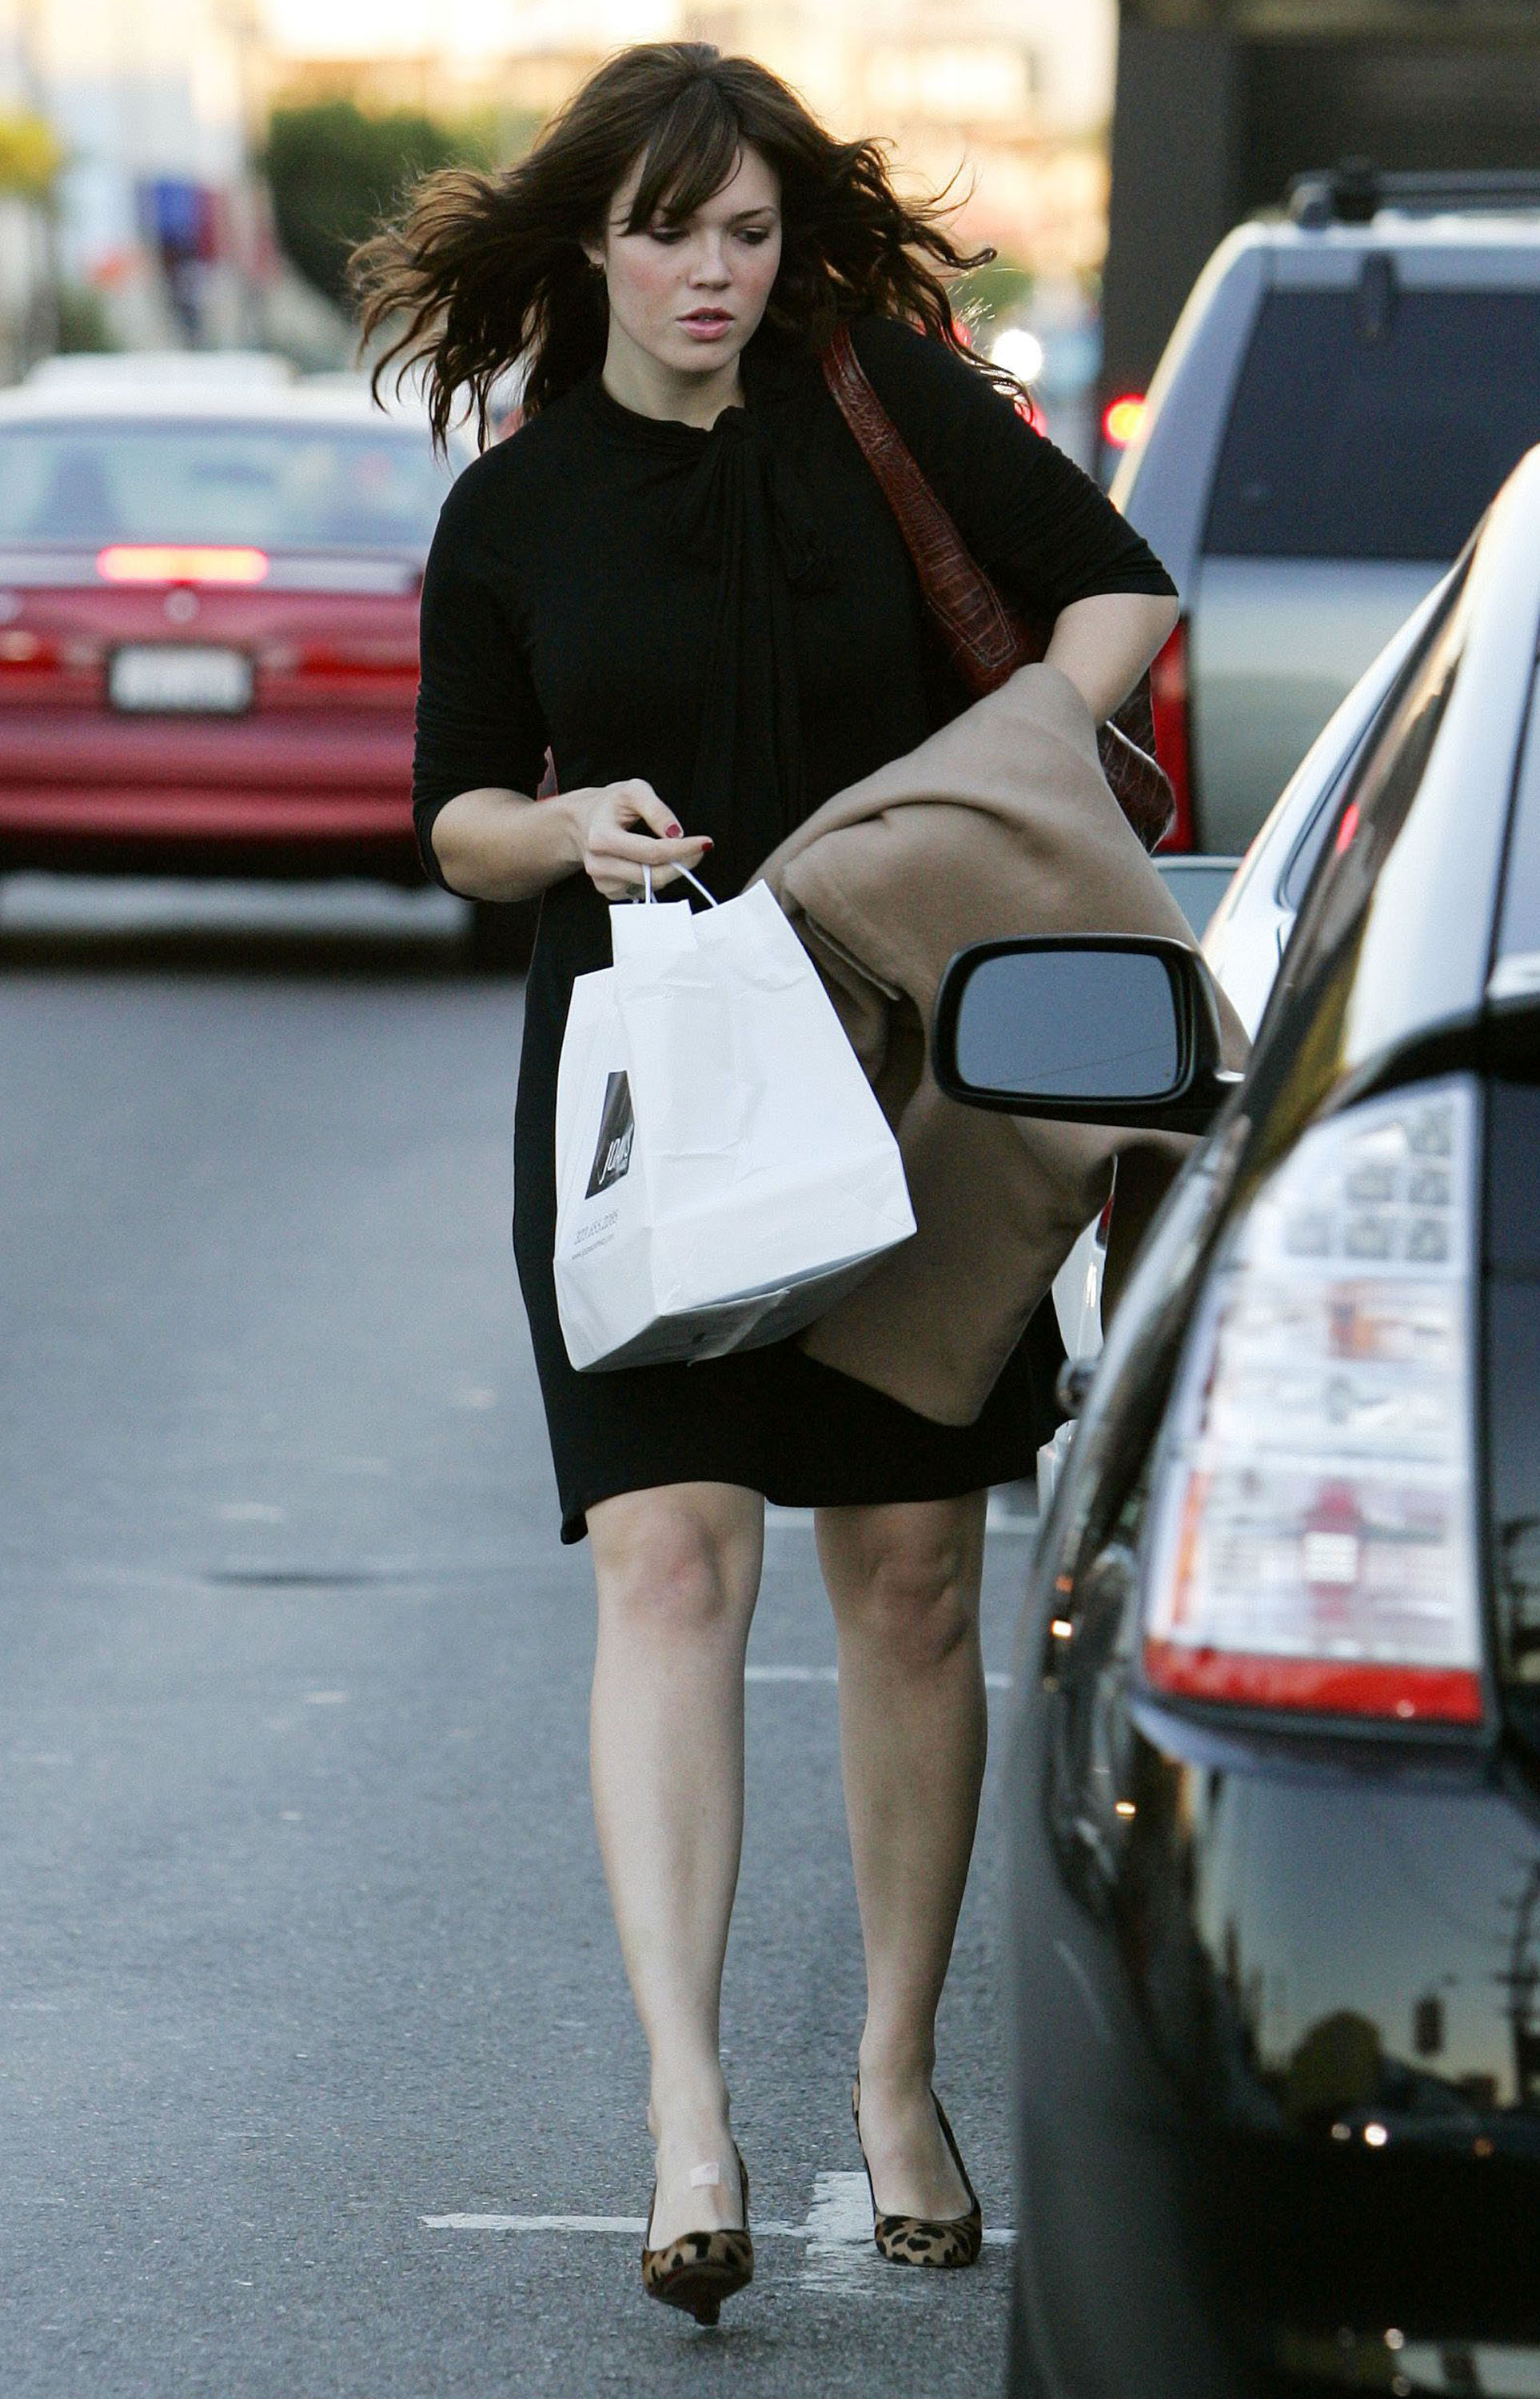 67247_celeb-city.eu_Mandy_Moore_out_and_about_in_West_Hollywood_10.12.2007_07_122_822lo.jpg